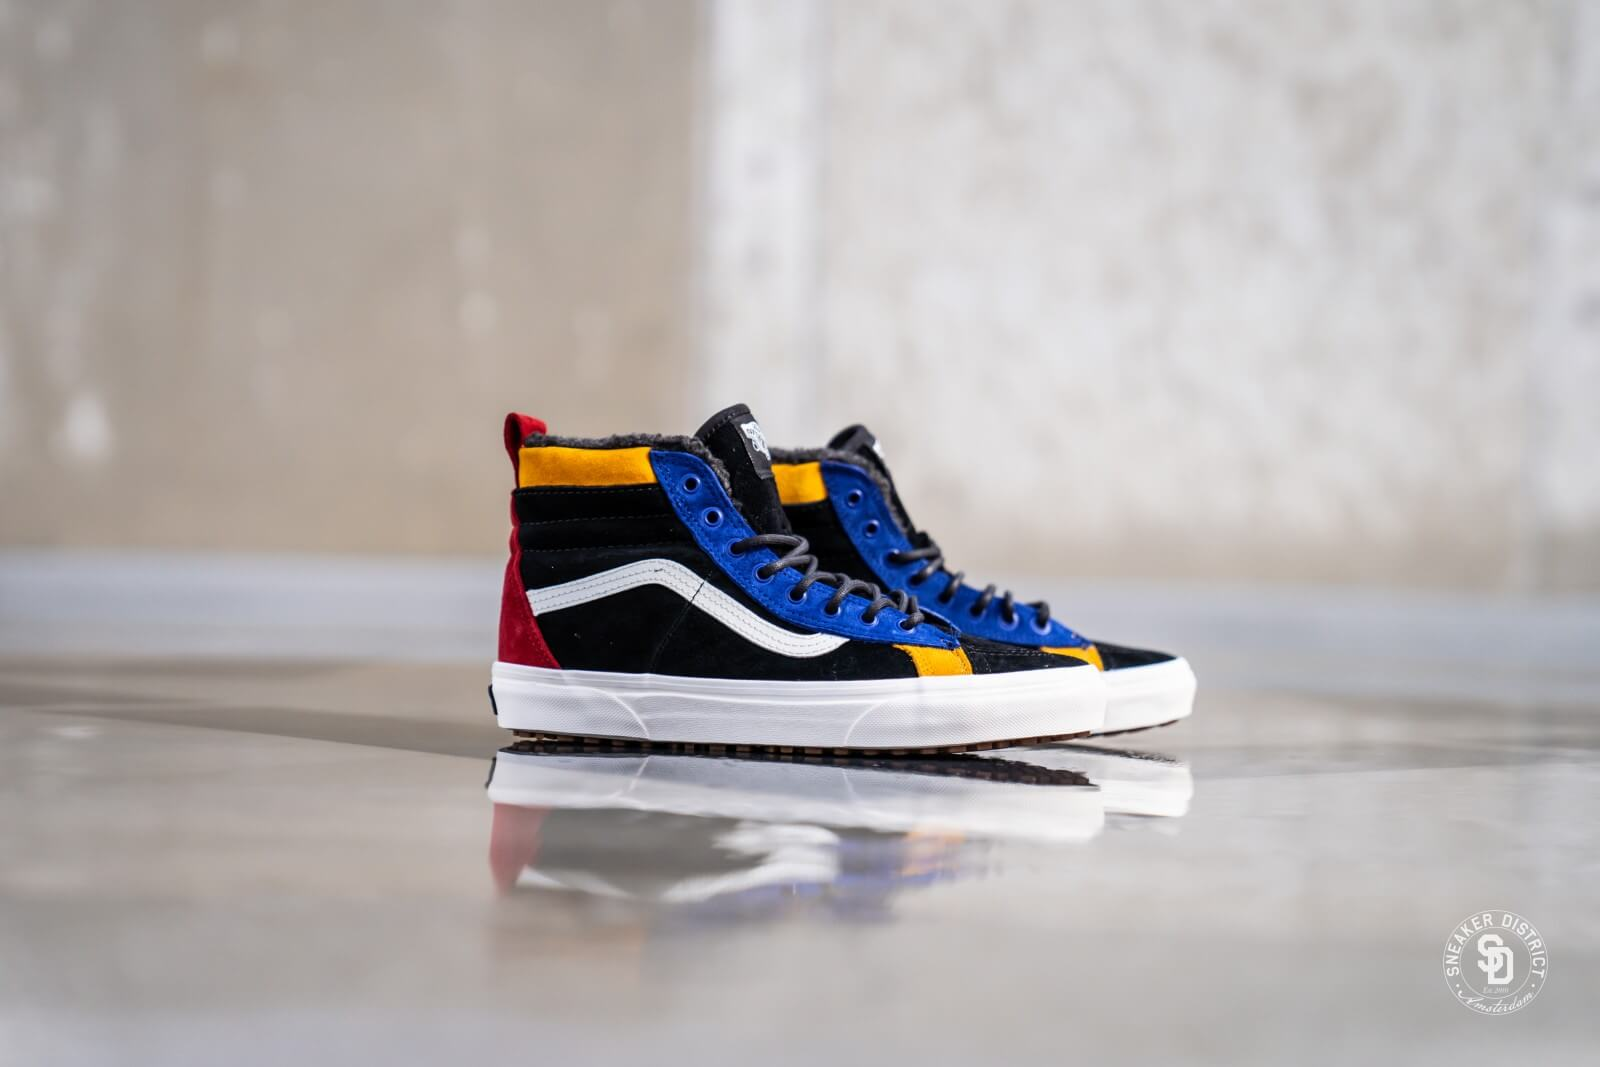 vans sk8 hi 46 mte dx black surf the web vn0a3dq5t3x1 vans sk8 hi 46 mte dx black surf the web